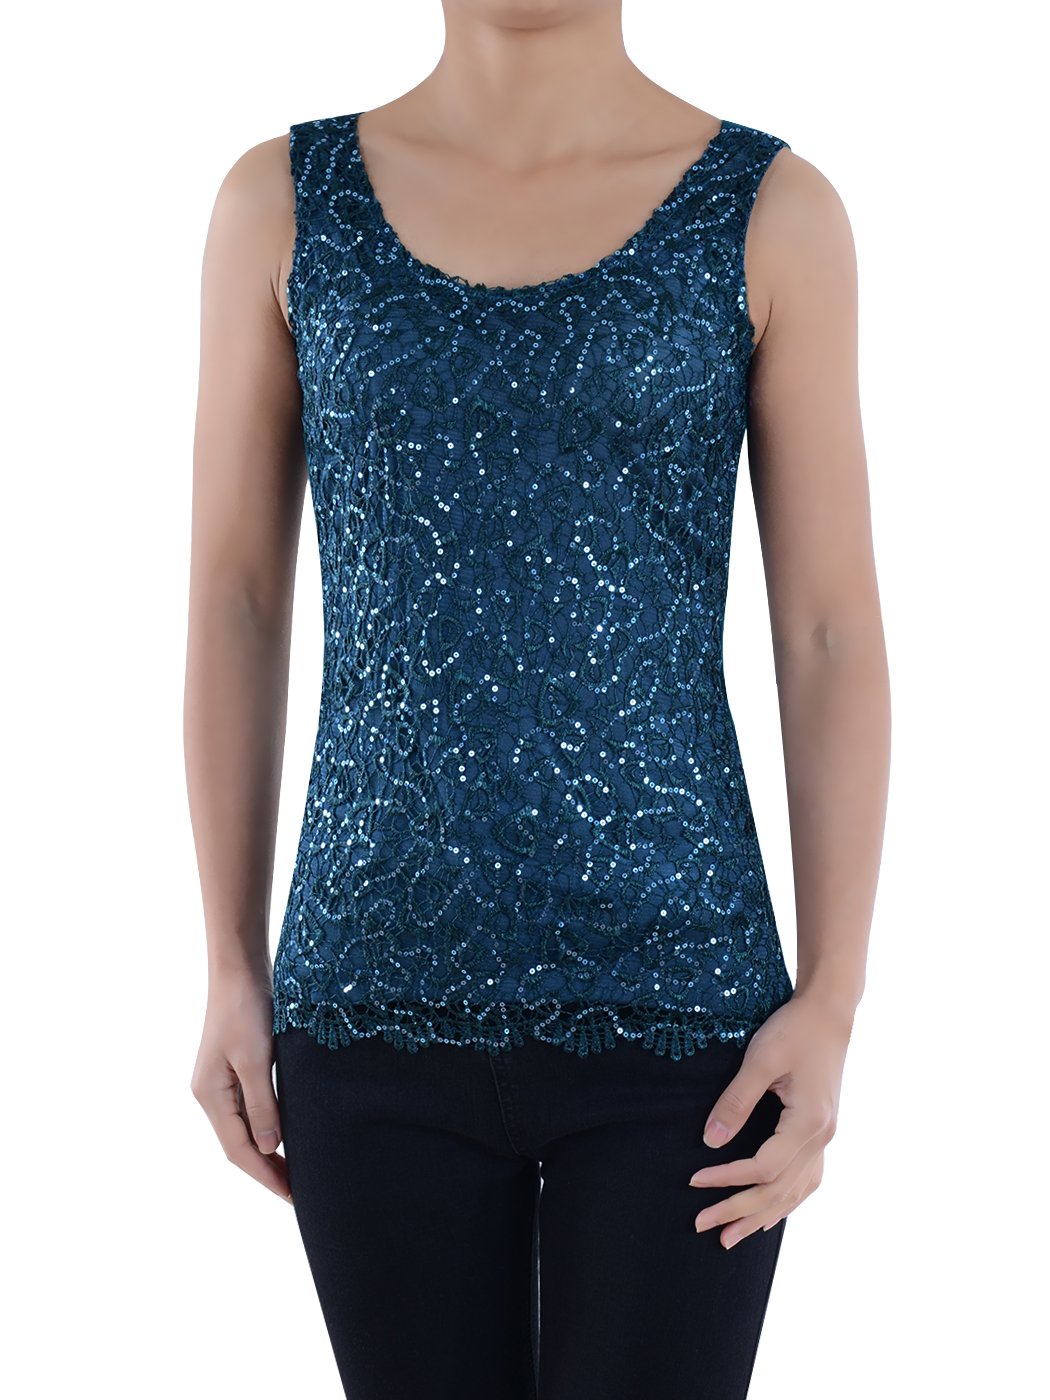 Summer Womens Slim Fit Sparkly Lace Embroidery Shining Vest Bling Sequin Tank Top Sleeveless T-Shirt Blouses